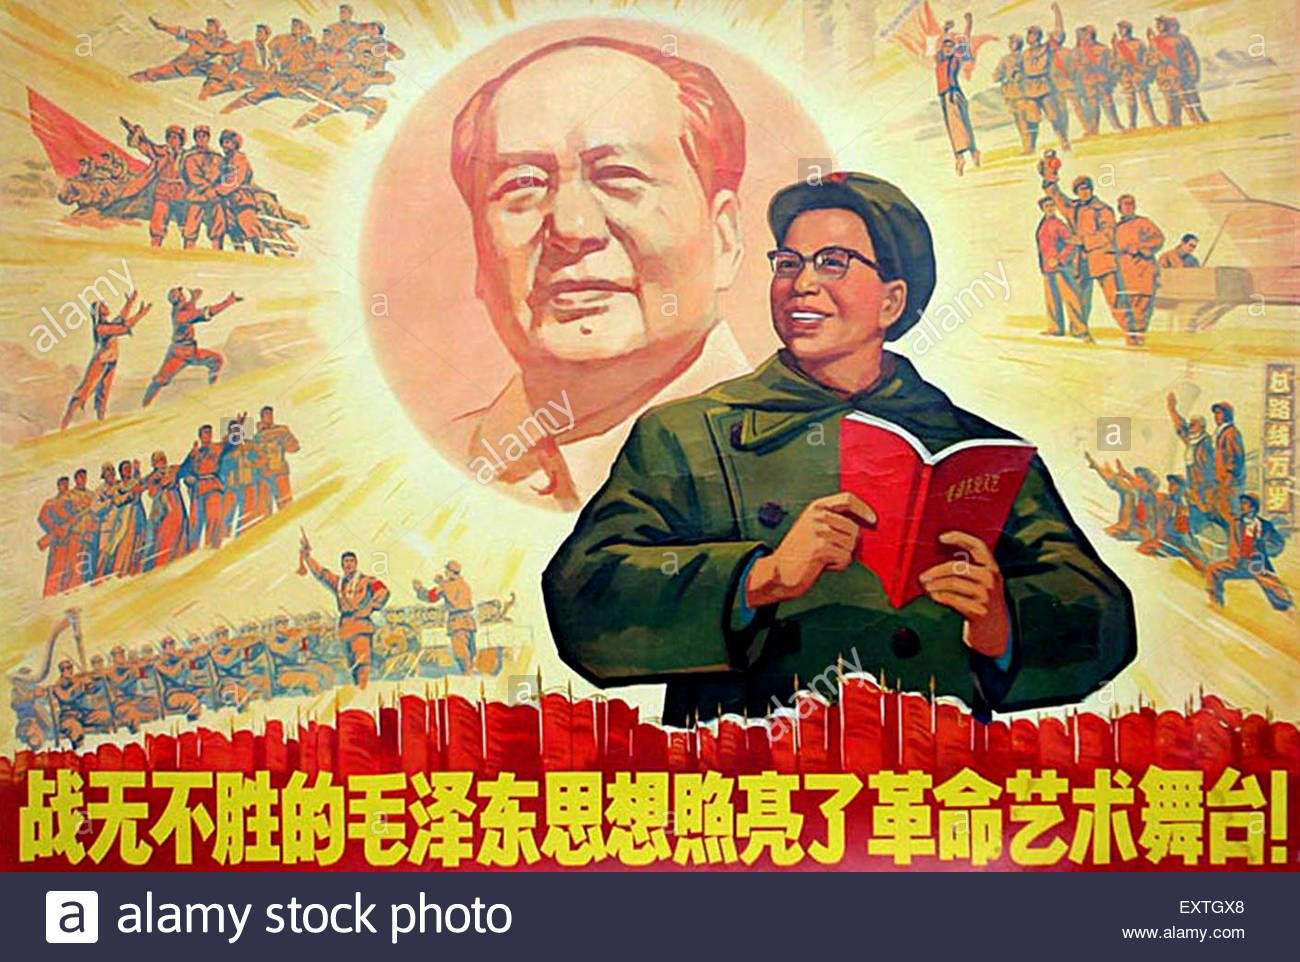 Chinese Communist Political China Propaganda Red Army Revolution Poster Print A4